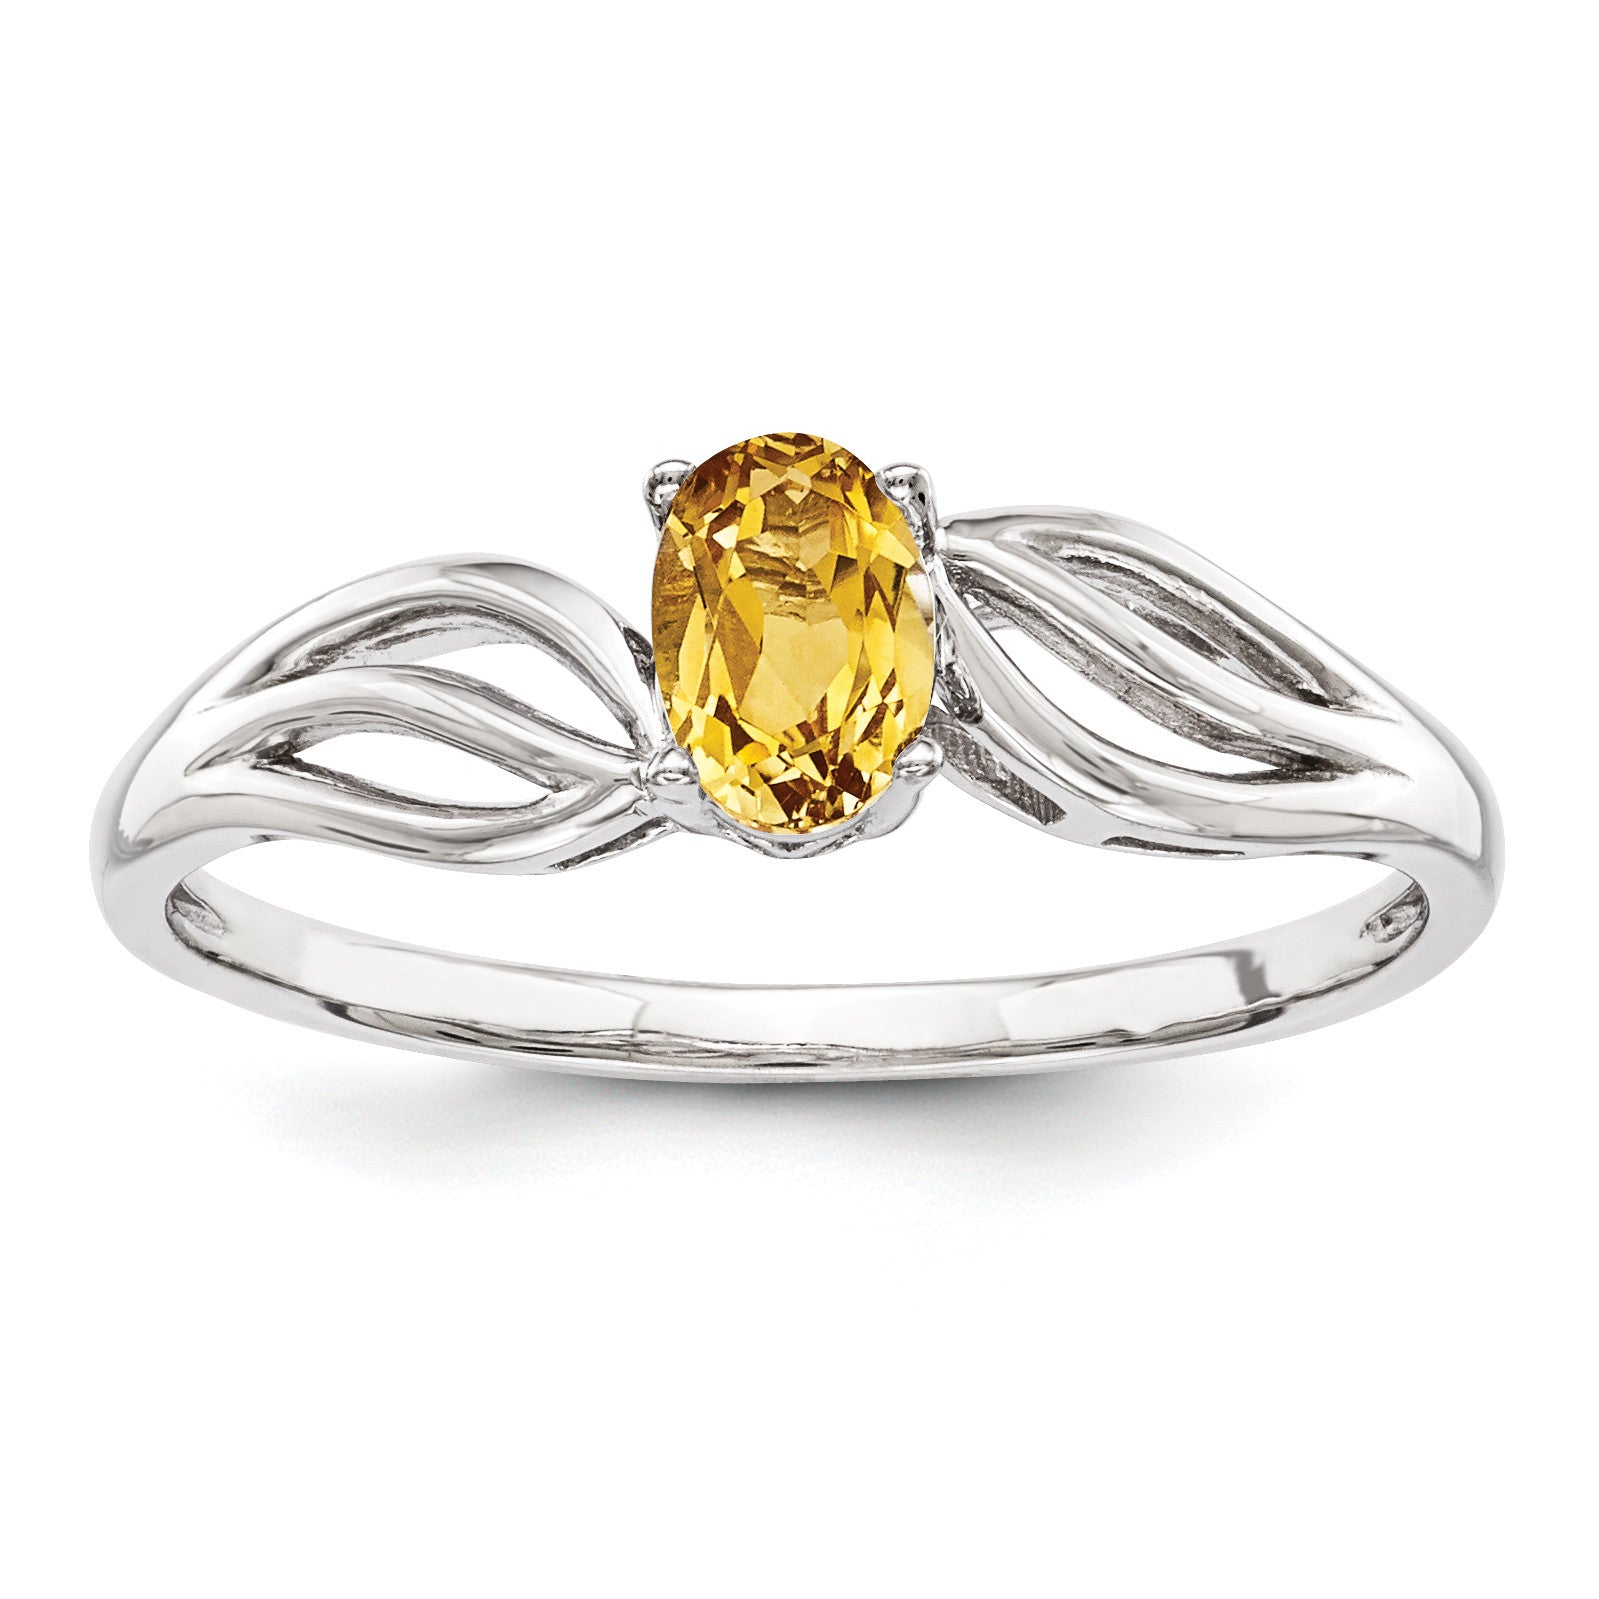 Sterling Silver Rhodium-plated Citrine Ring QBR17NOV - shirin-diamonds